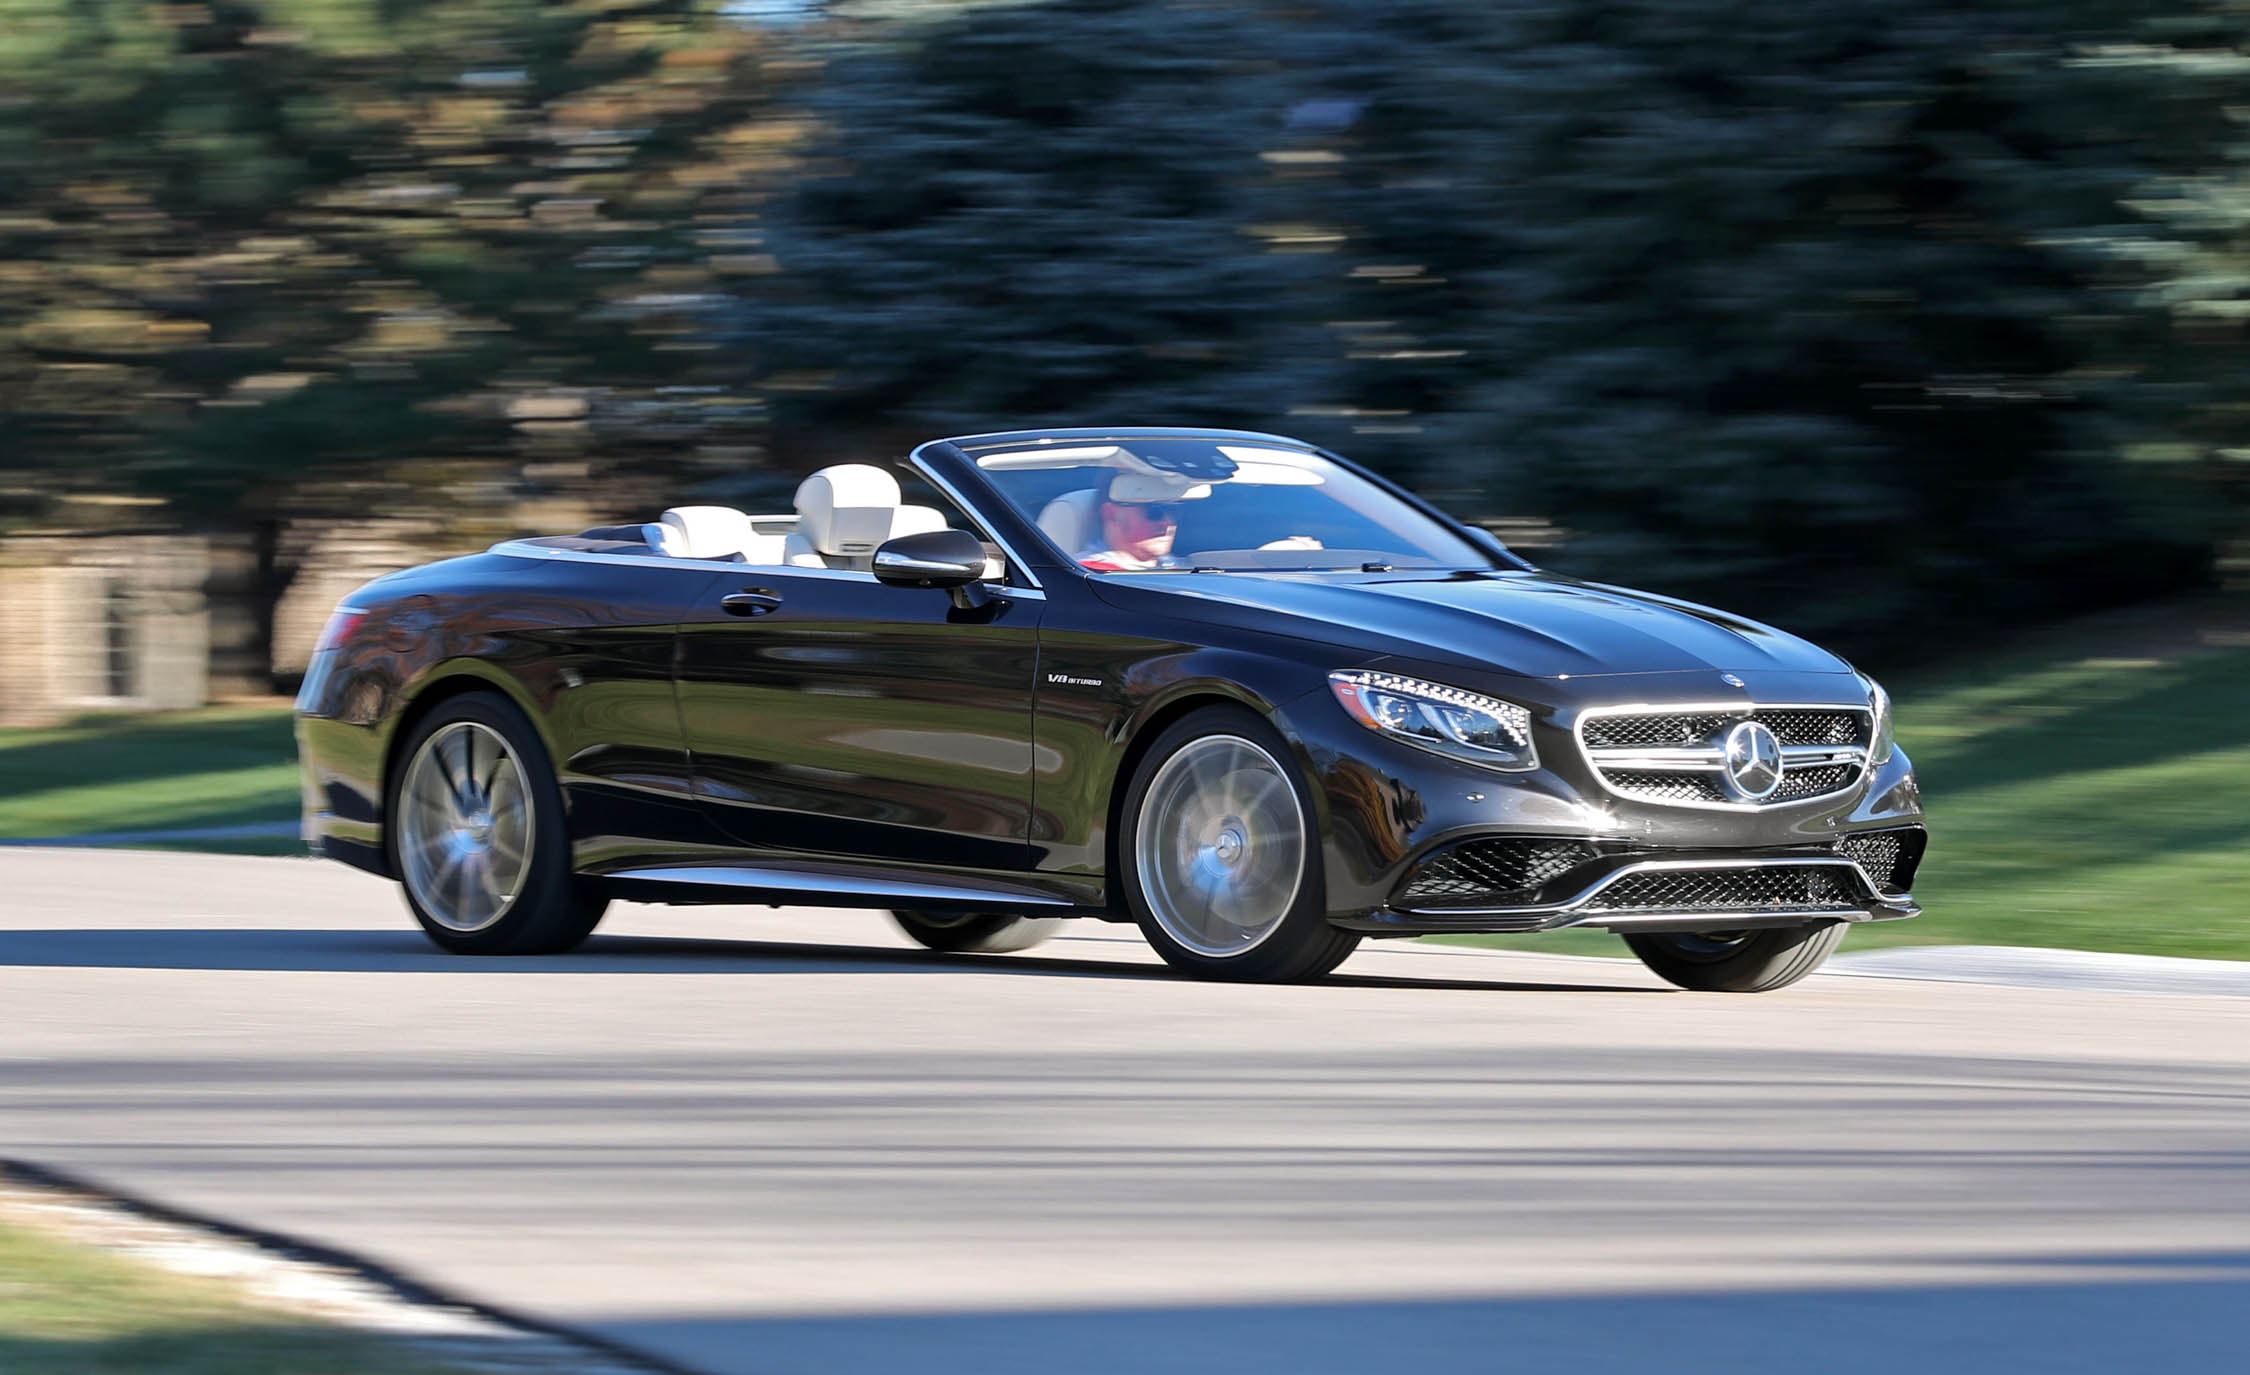 2017 Mercedes Amg S63 Cabriolet Test Drive Front And Side View Roof Open (Photo 27 of 38)